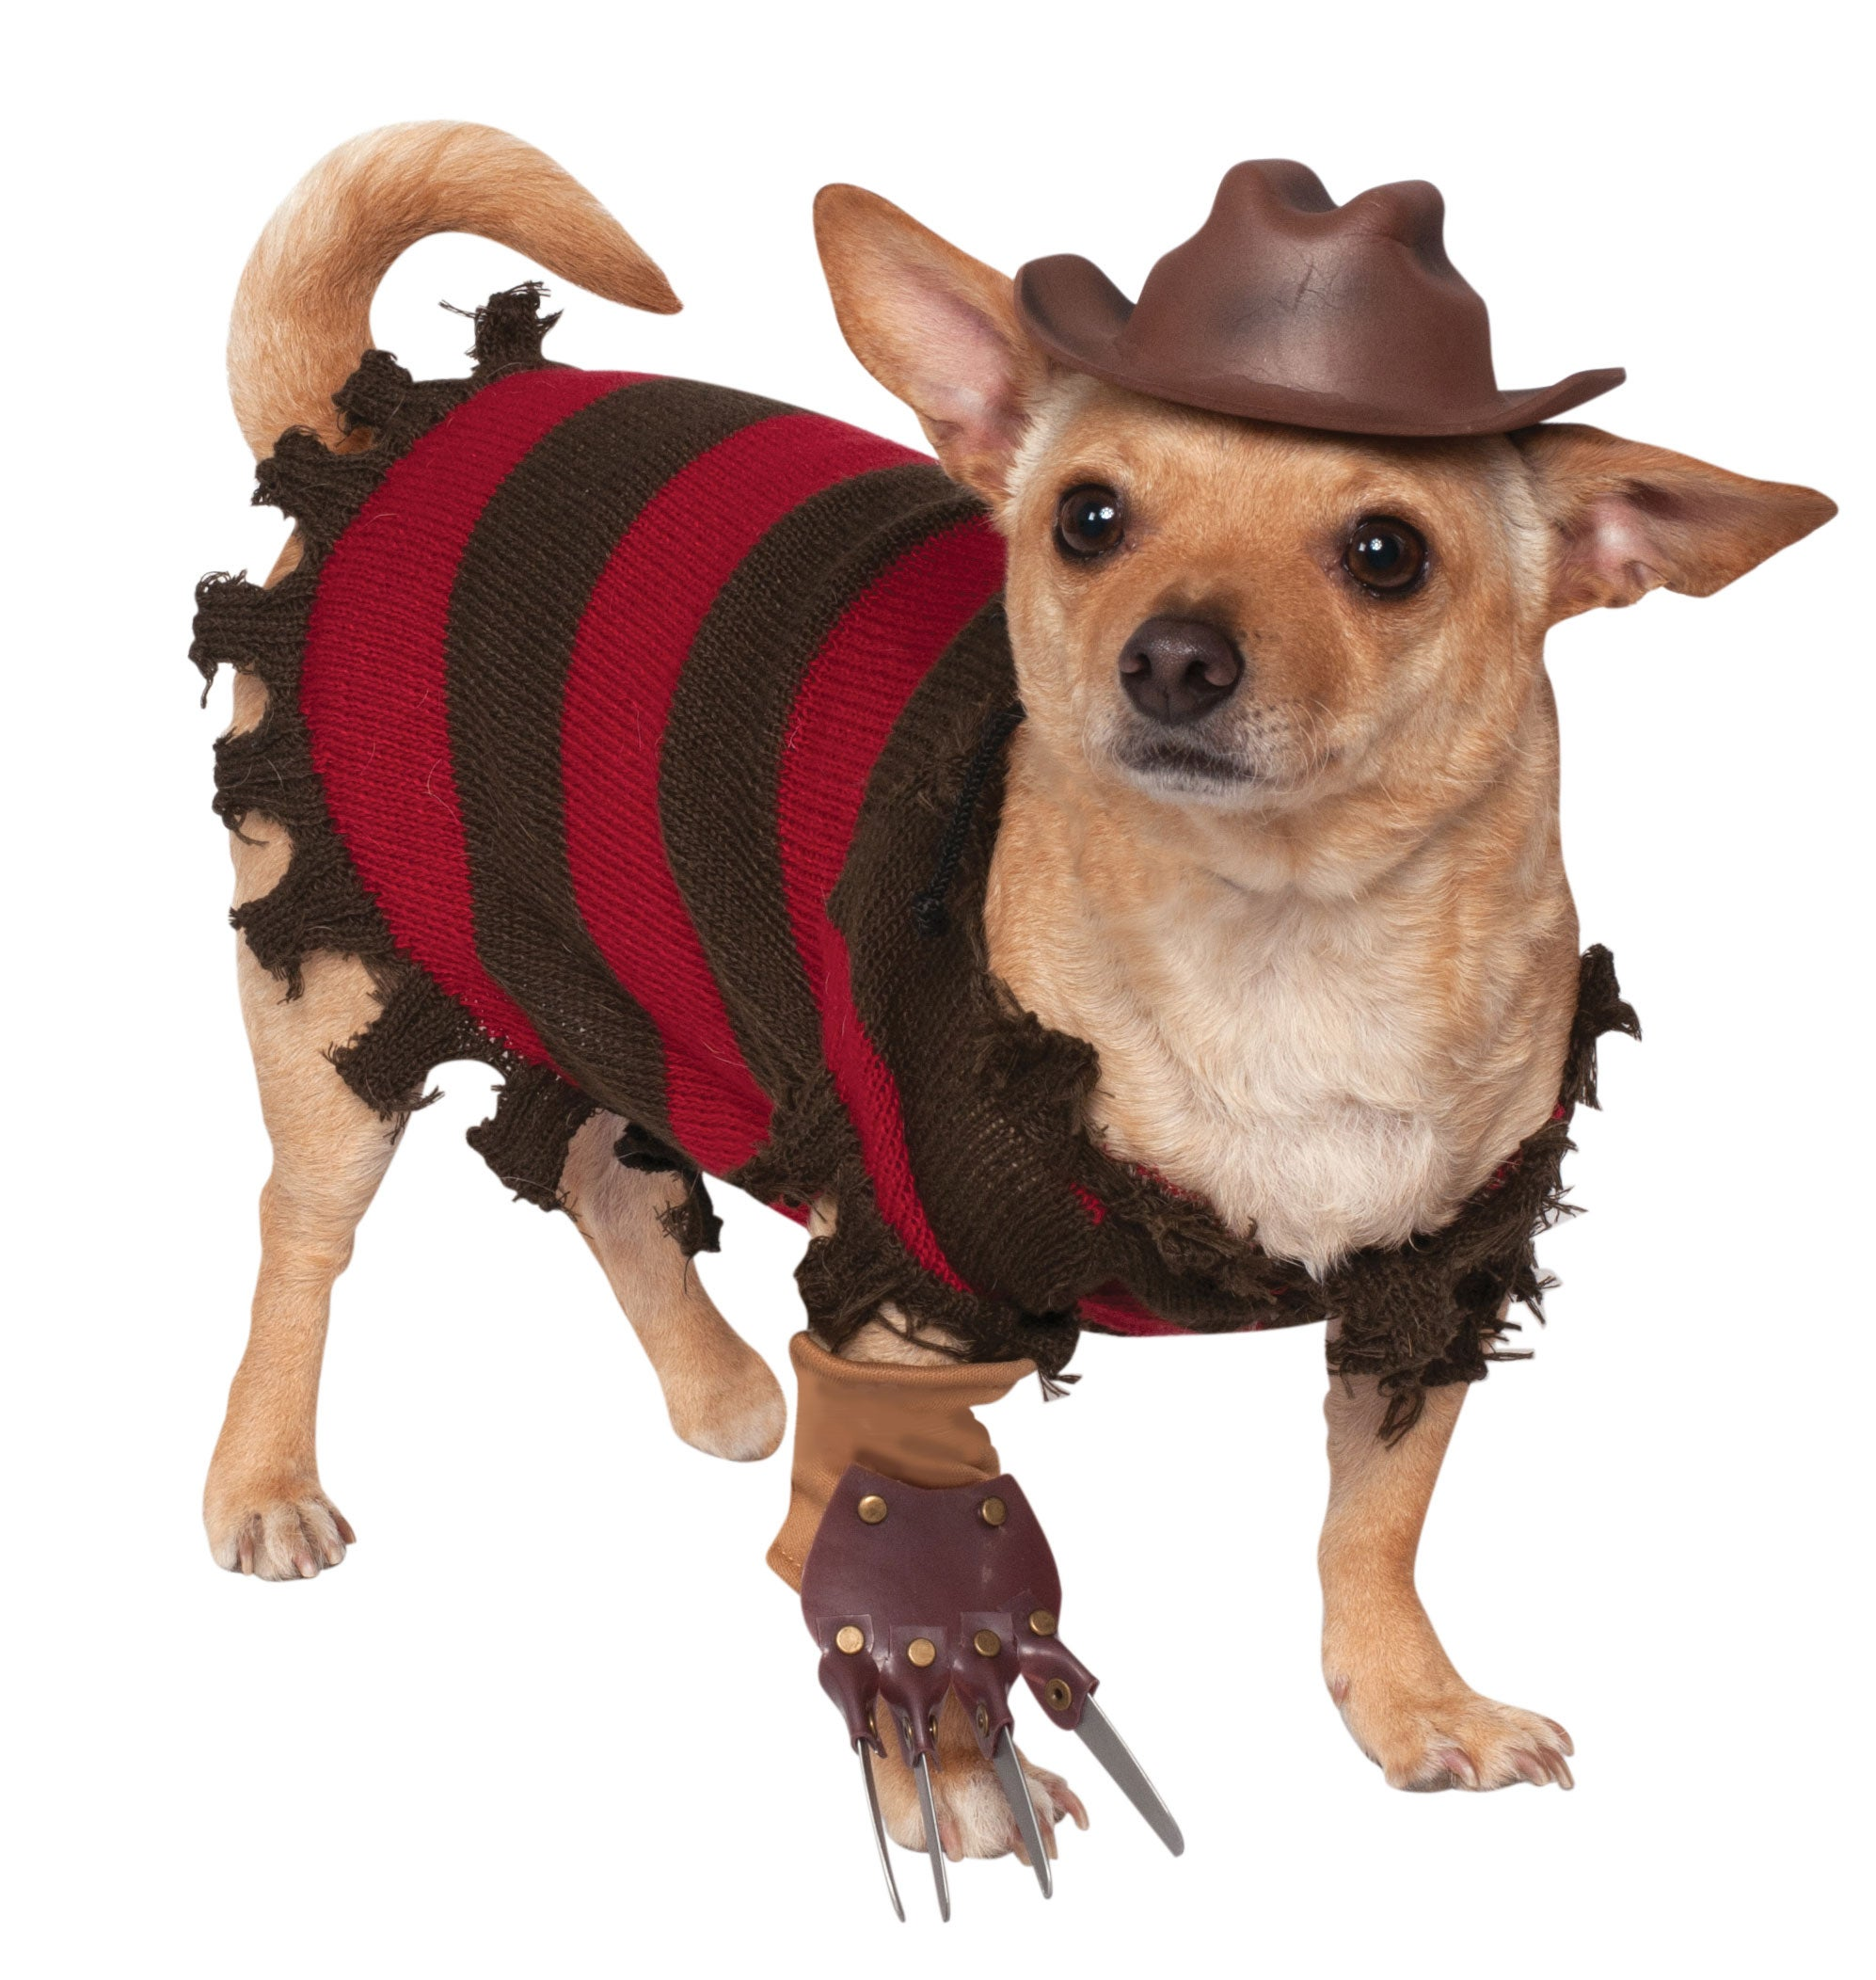 freddy krueger and jason voorhees halloween costumes for dogs revealed